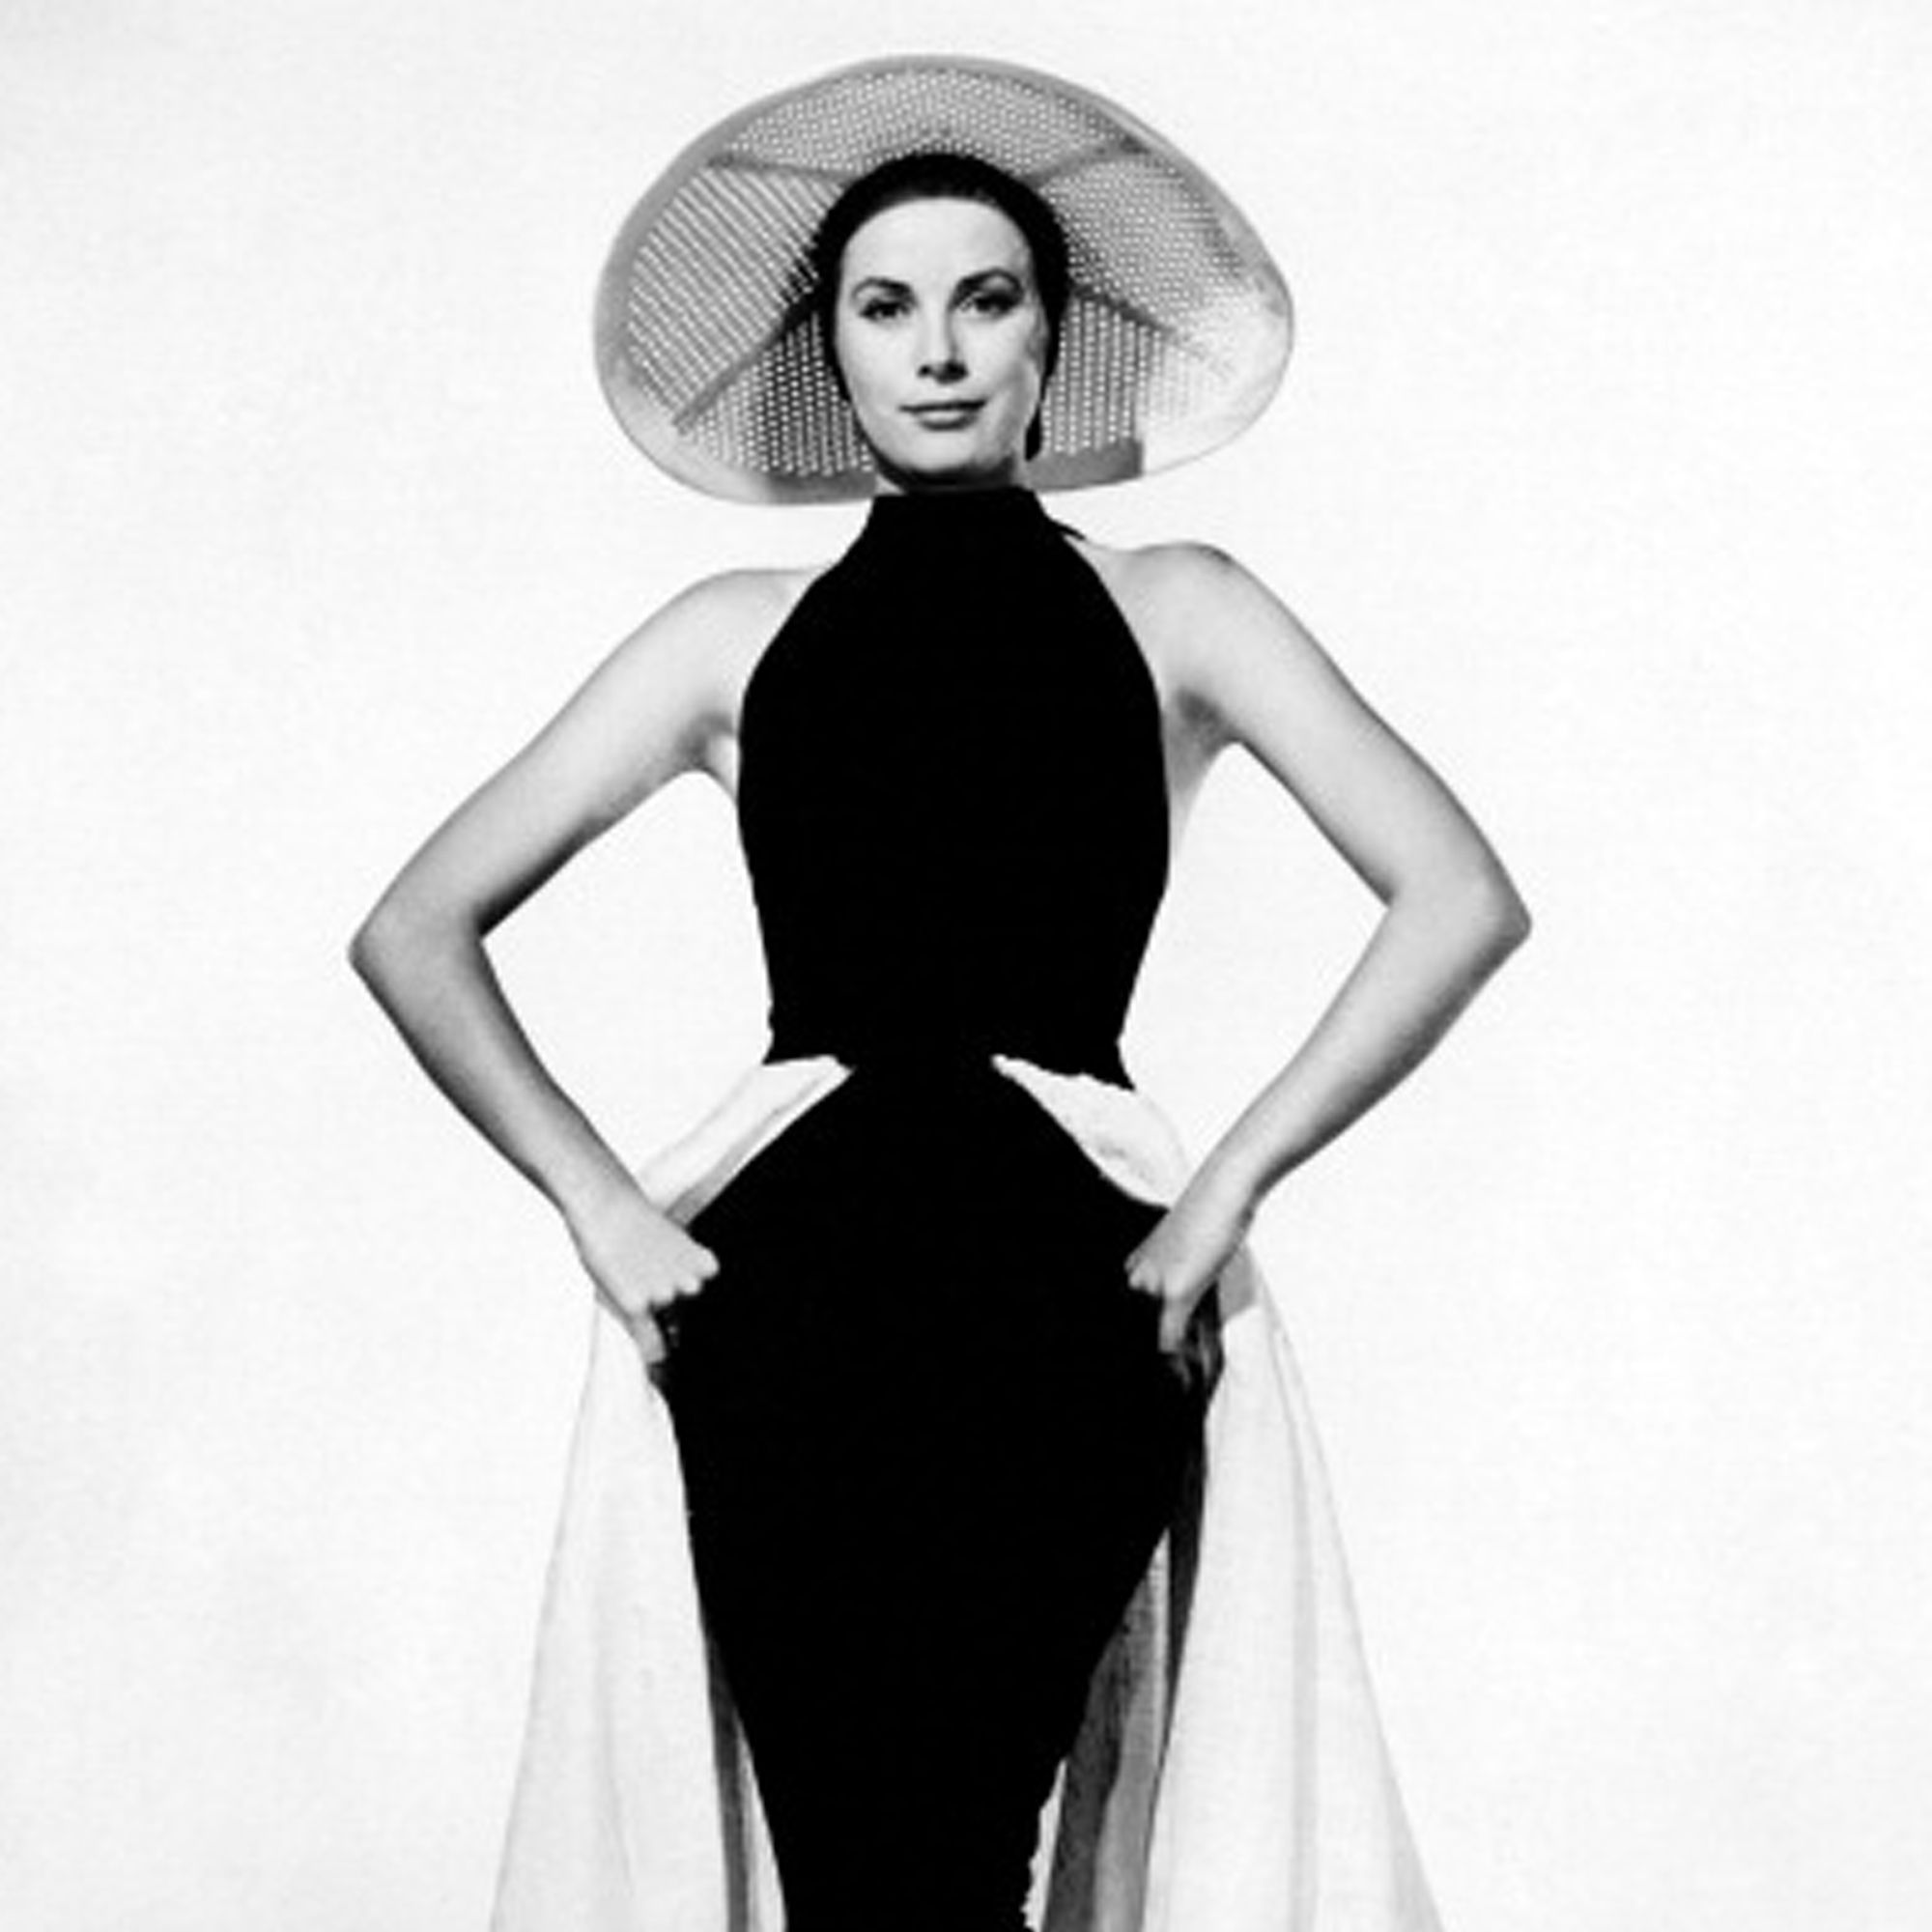 American actress and Princess consort of Monaco Grace Kelly posing wearing a large brim hat and an hip dress on the set of the film To Catch a Thief. USA, 1955. (Photo by Mondadori Portfolio via Getty Images)